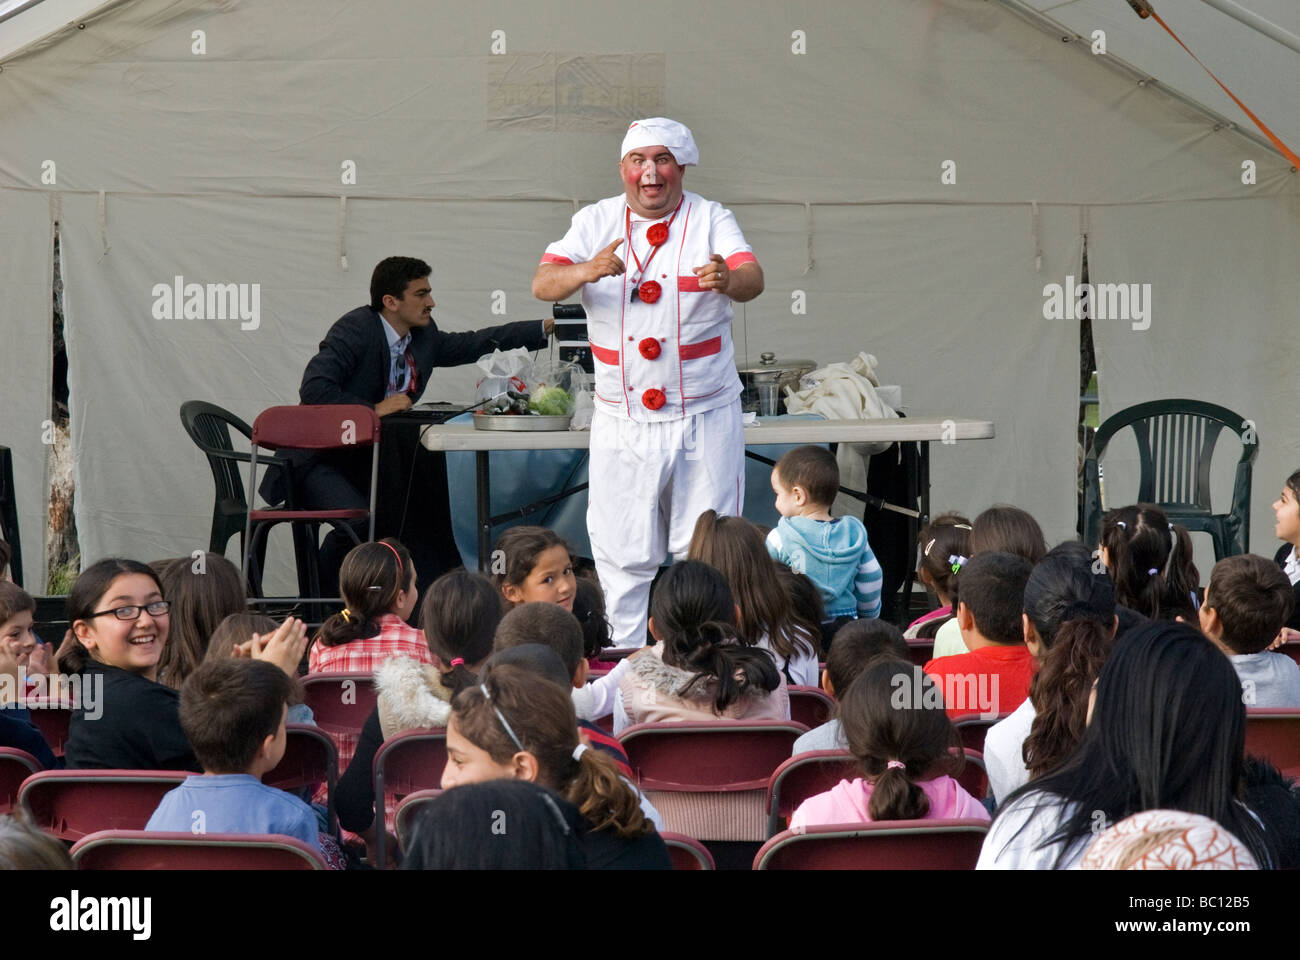 TURKISH COMEDIAN ENTERTAINING THE TURKISH CHILDREN IN CLISSOLD PARK - Stock Image